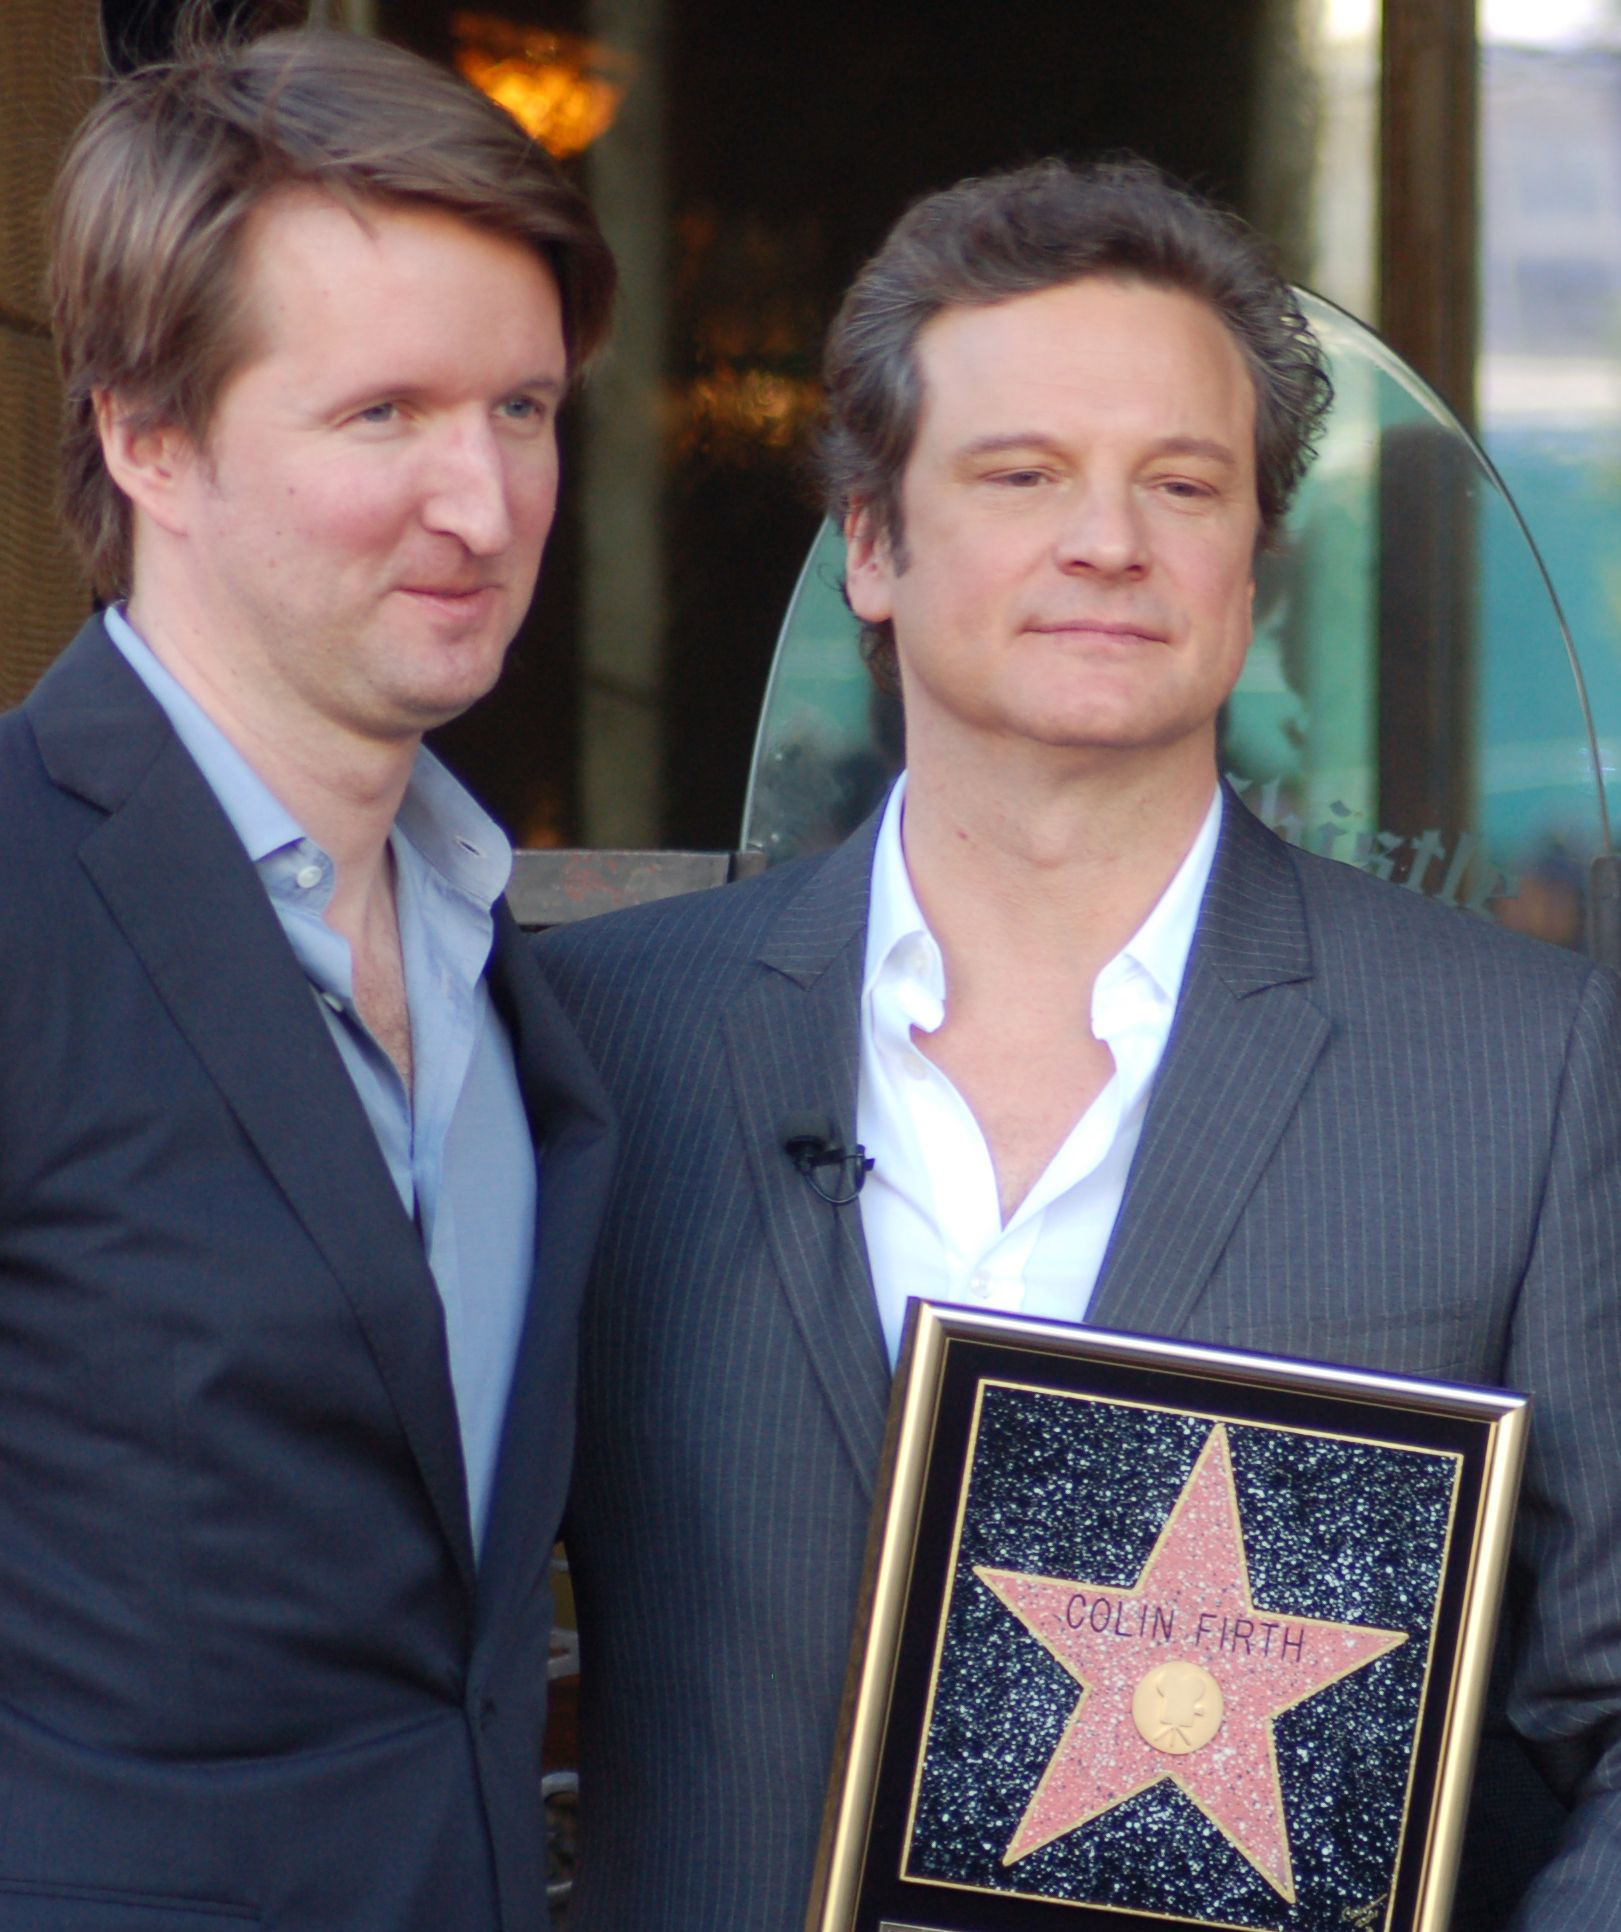 Tom Hooper and Colin Firth at a ceremony for Firth to receive a star on the Hollywood Walk of Fame.